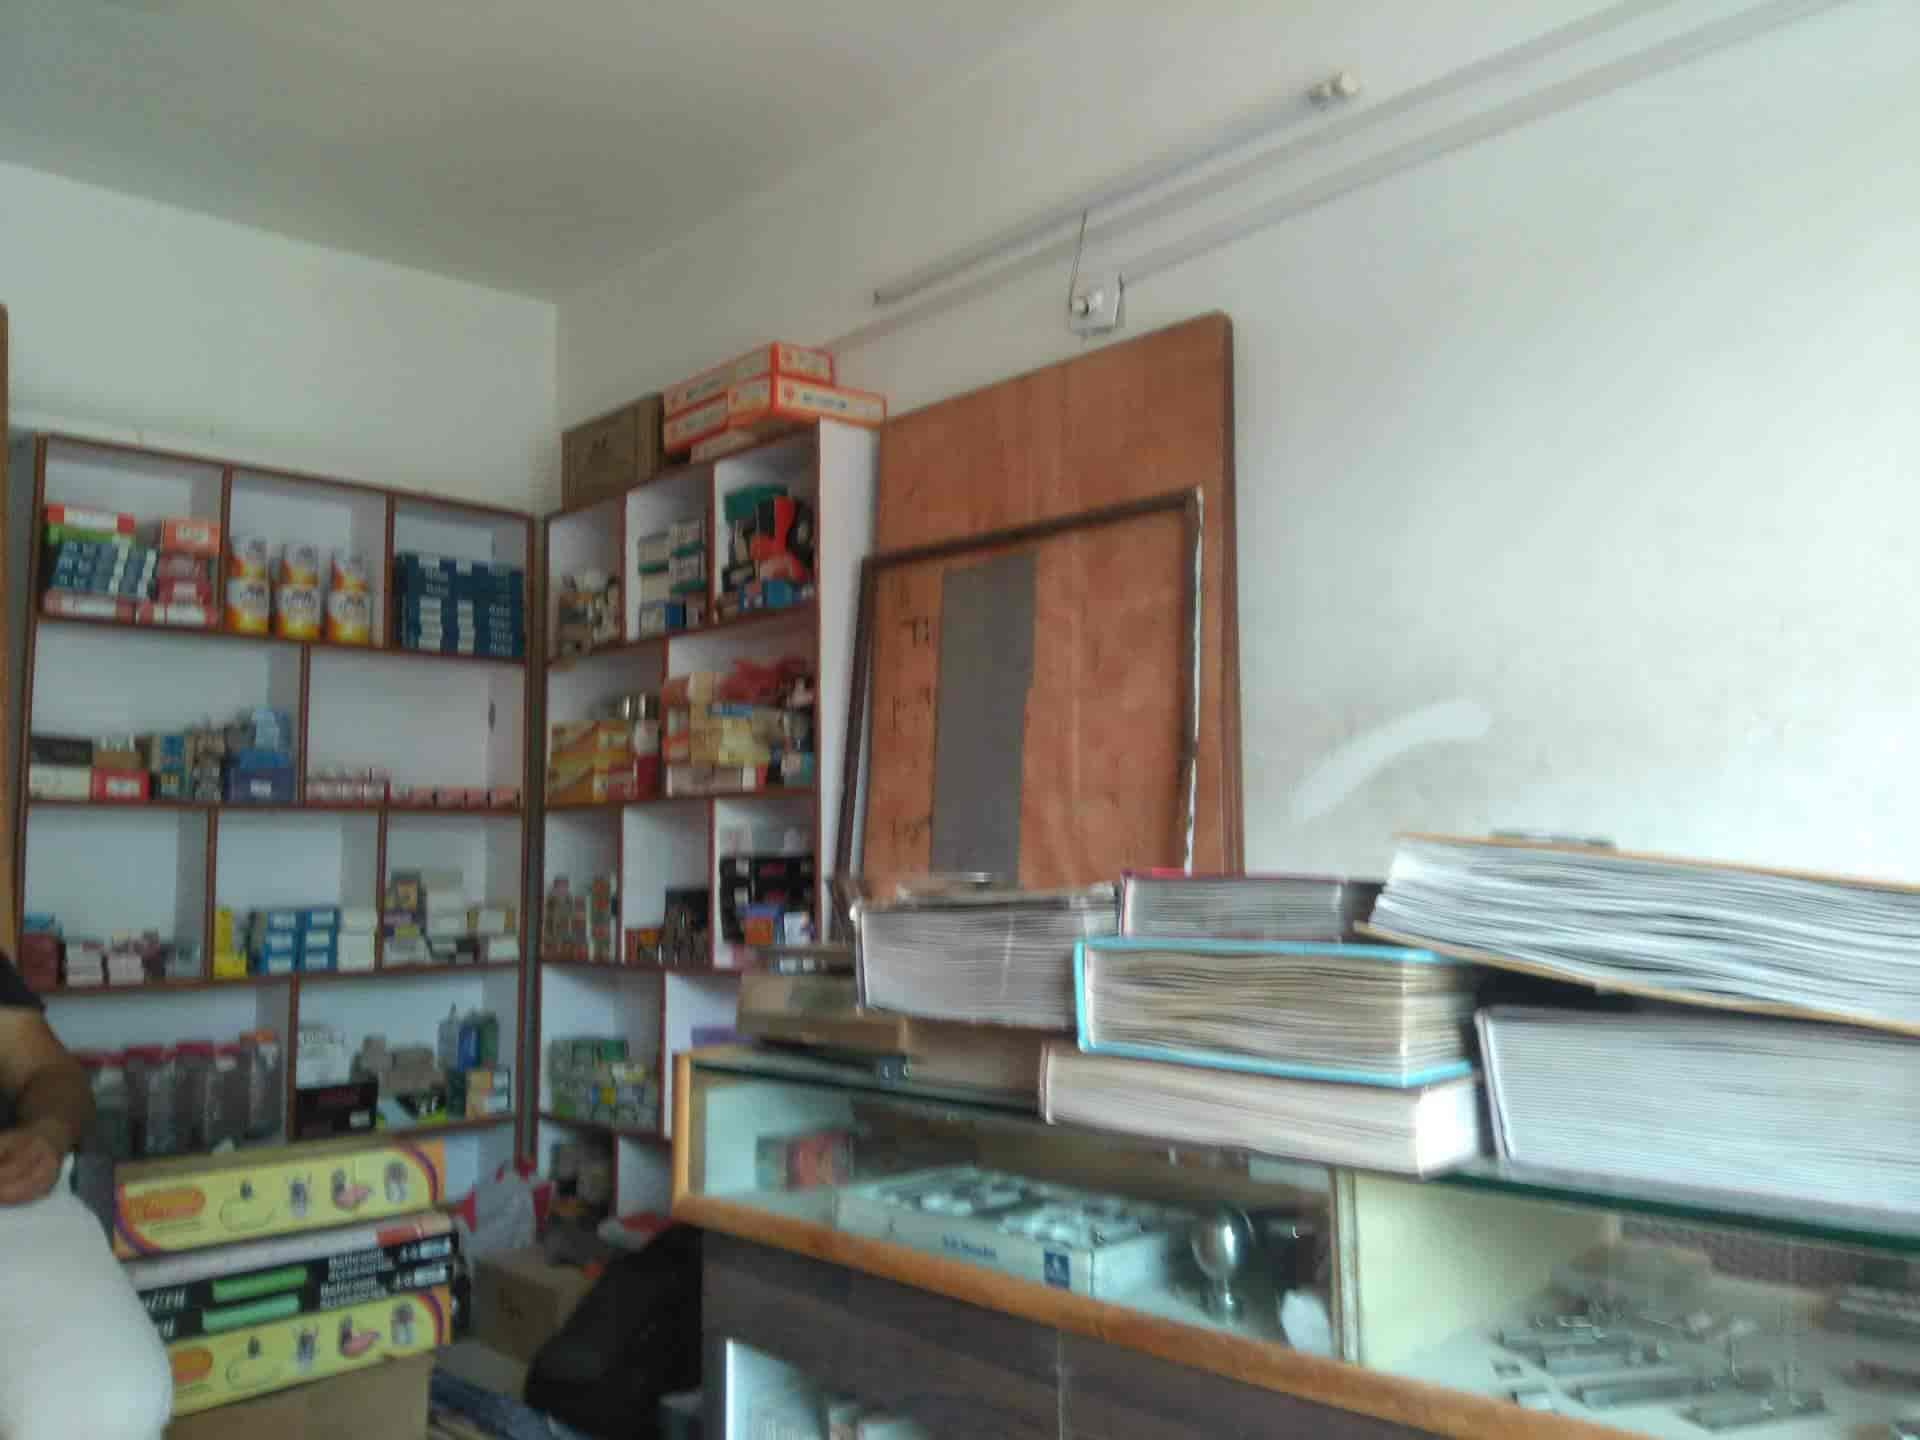 Recreation Hardware Photos, Tandalja Road, Vadodara